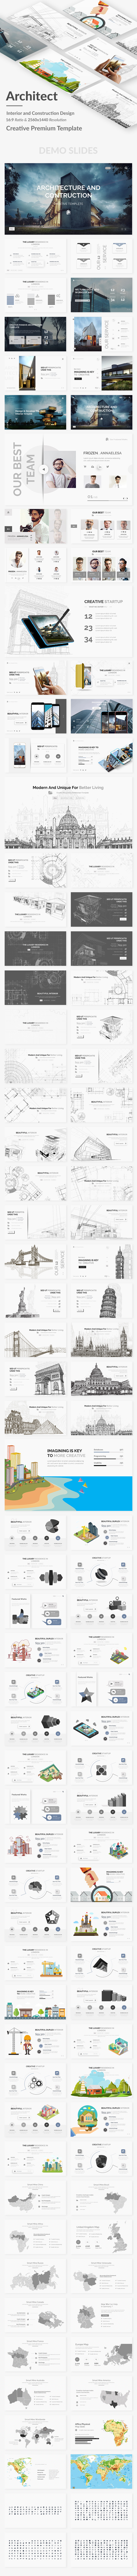 Architecture Interior and Construction Design Powerpoint Template - Creative PowerPoint Templates